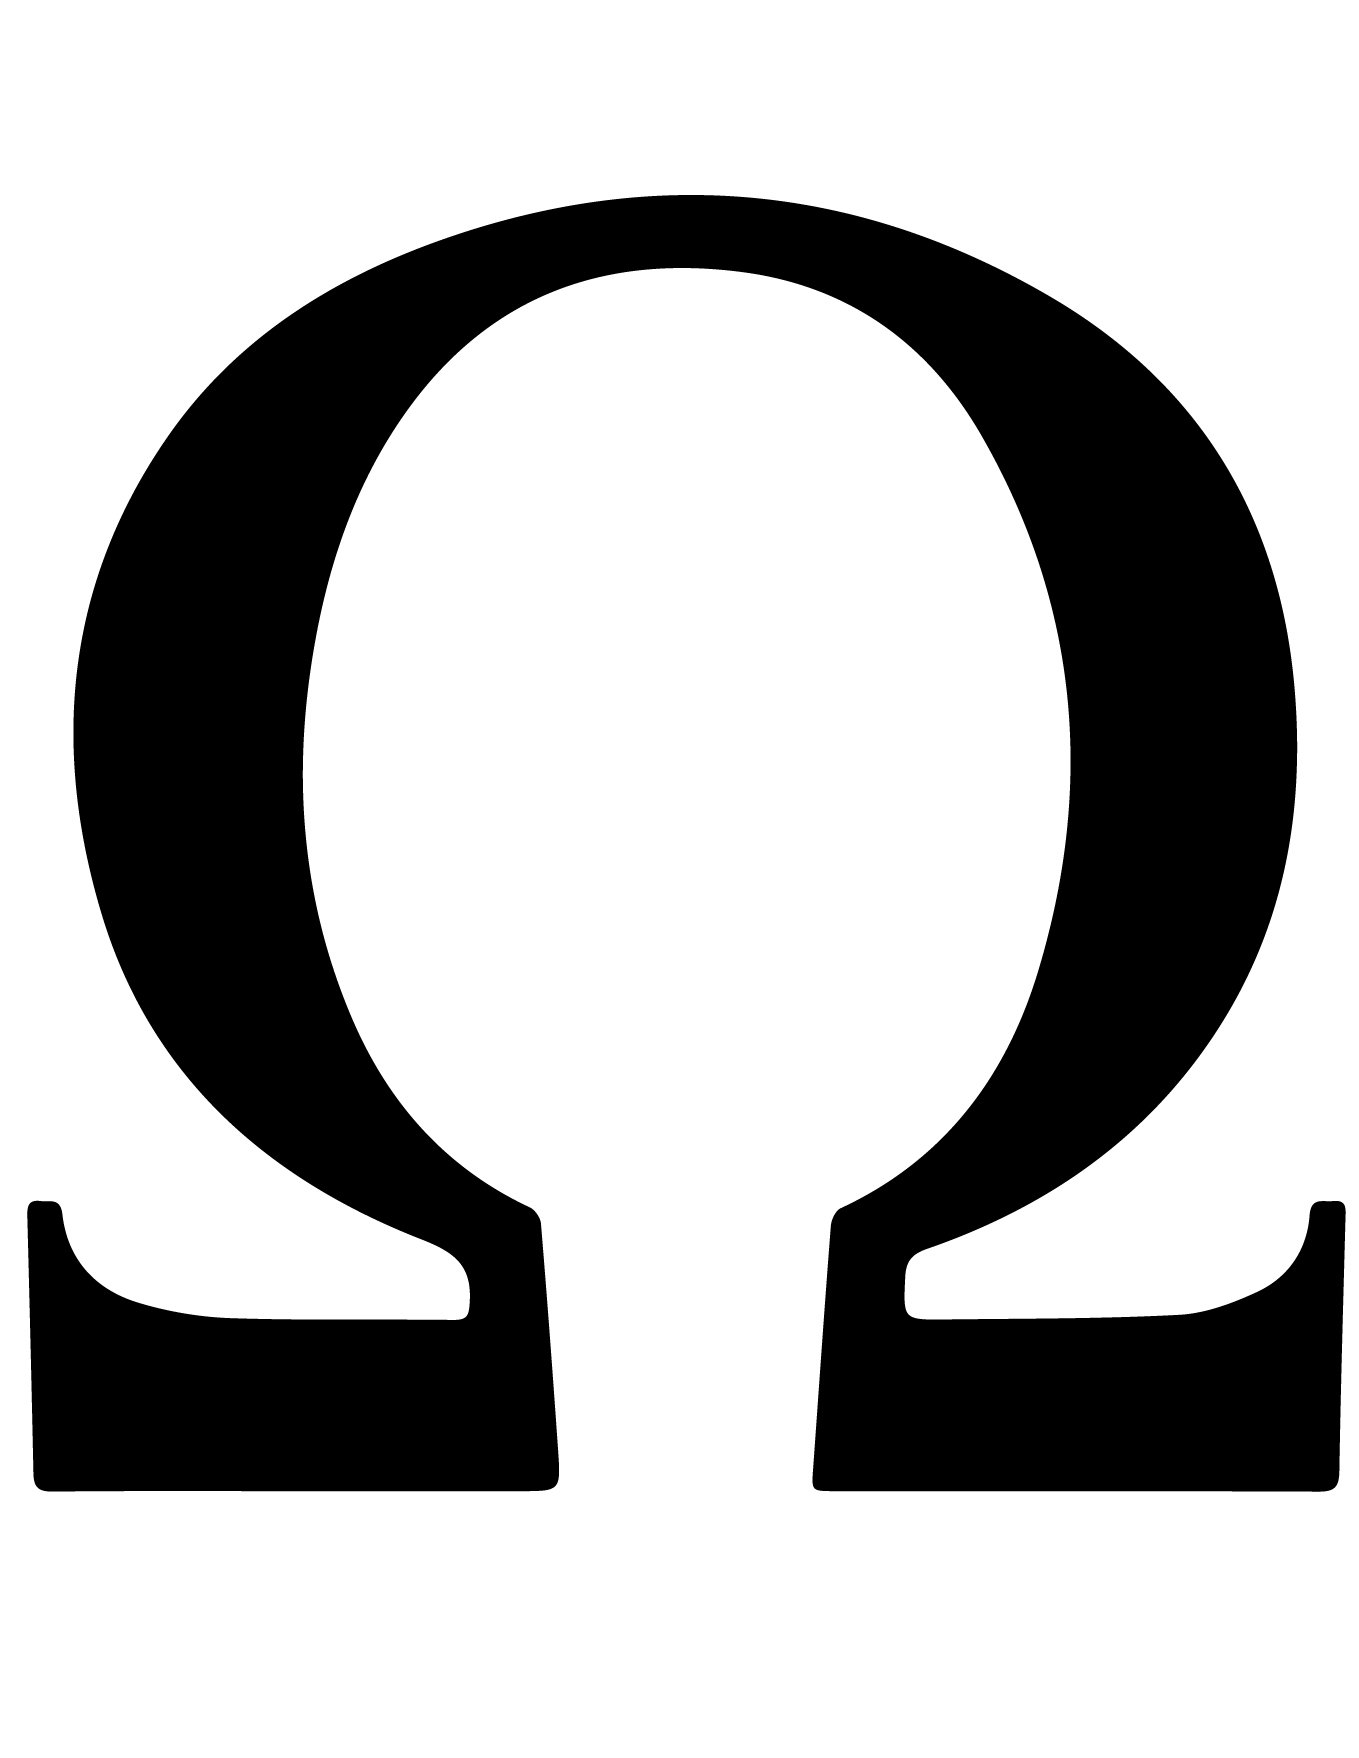 Omega symbolsign and its meaning mythologian the origins of the omega signsymbol biocorpaavc Images